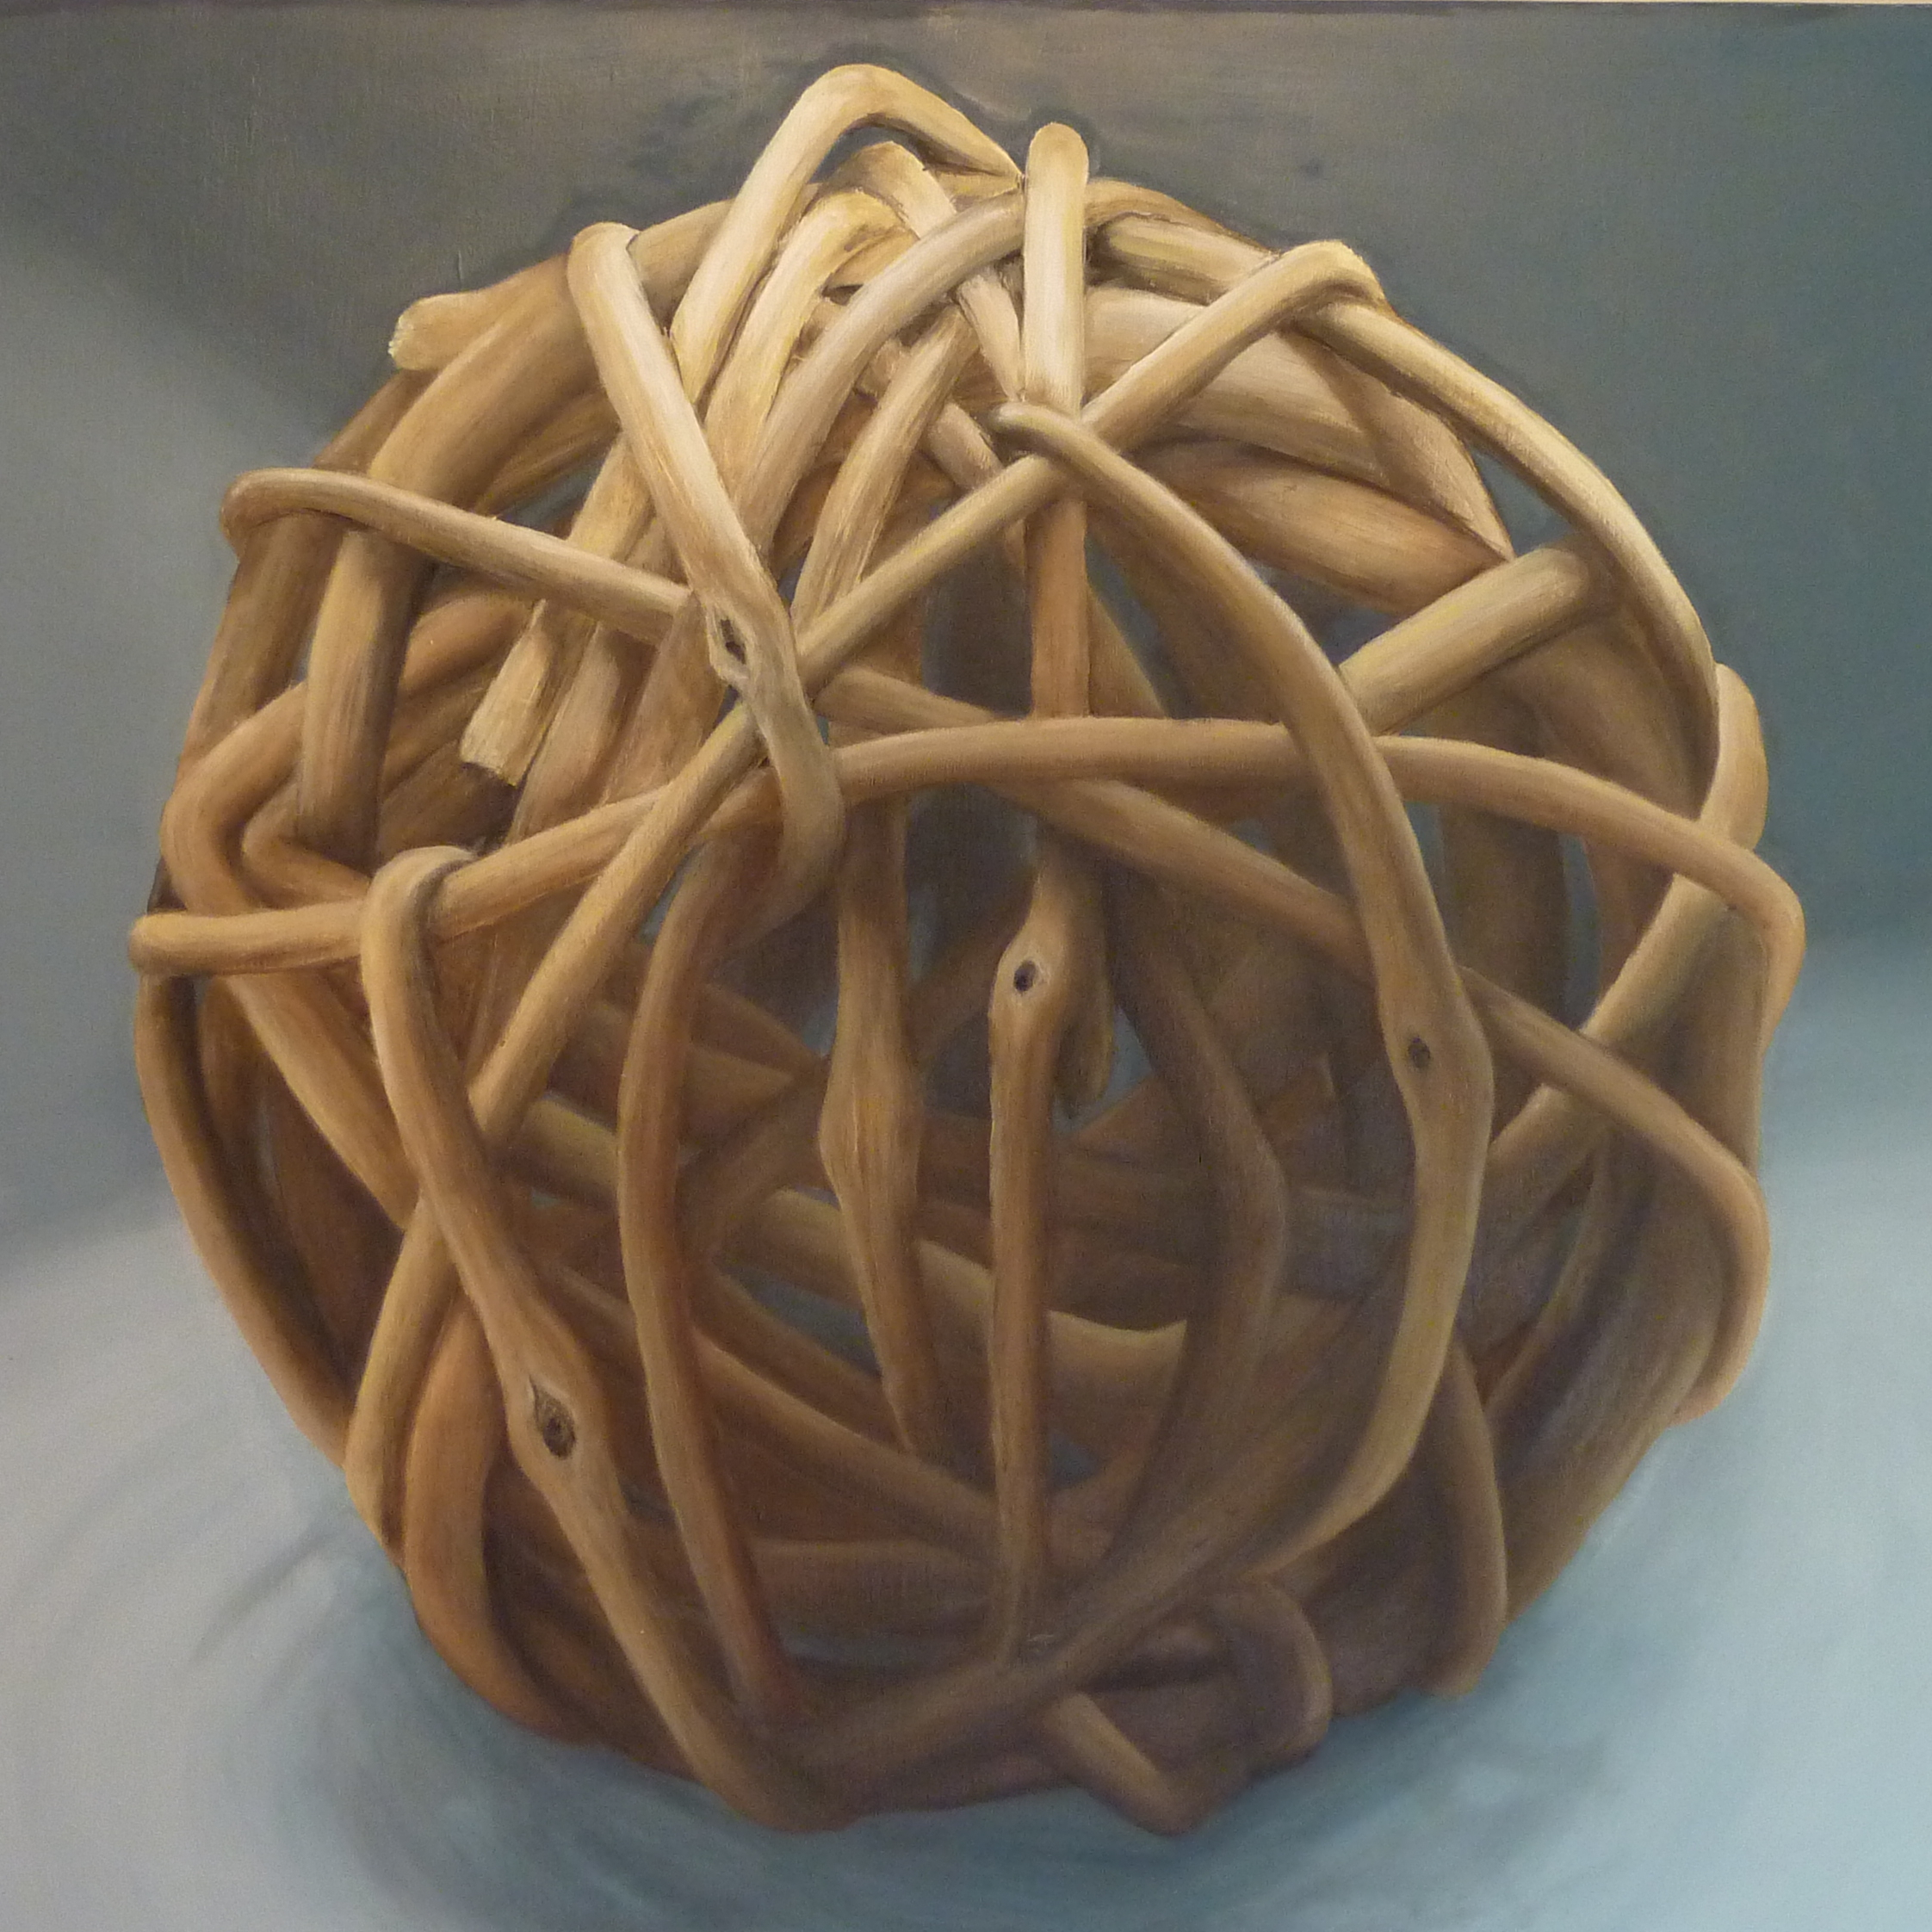 Wicker Ball, 2010